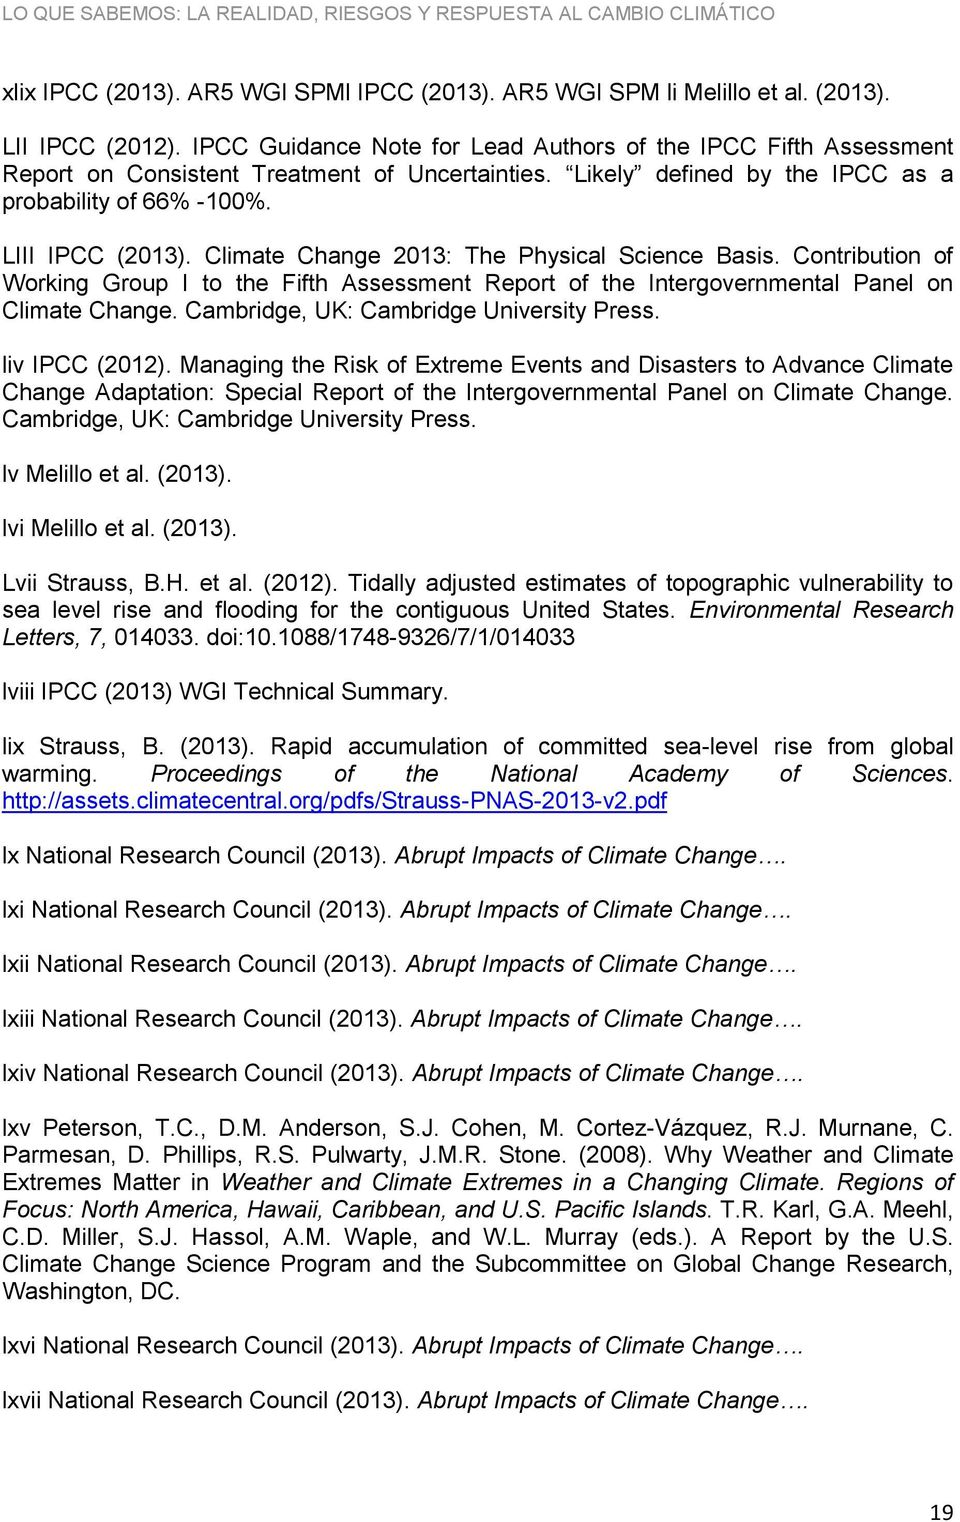 Climate Change 2013: The Physical Science Basis. Contribution of Working Group I to the Fifth Assessment Report of the Intergovernmental Panel on Climate Change.